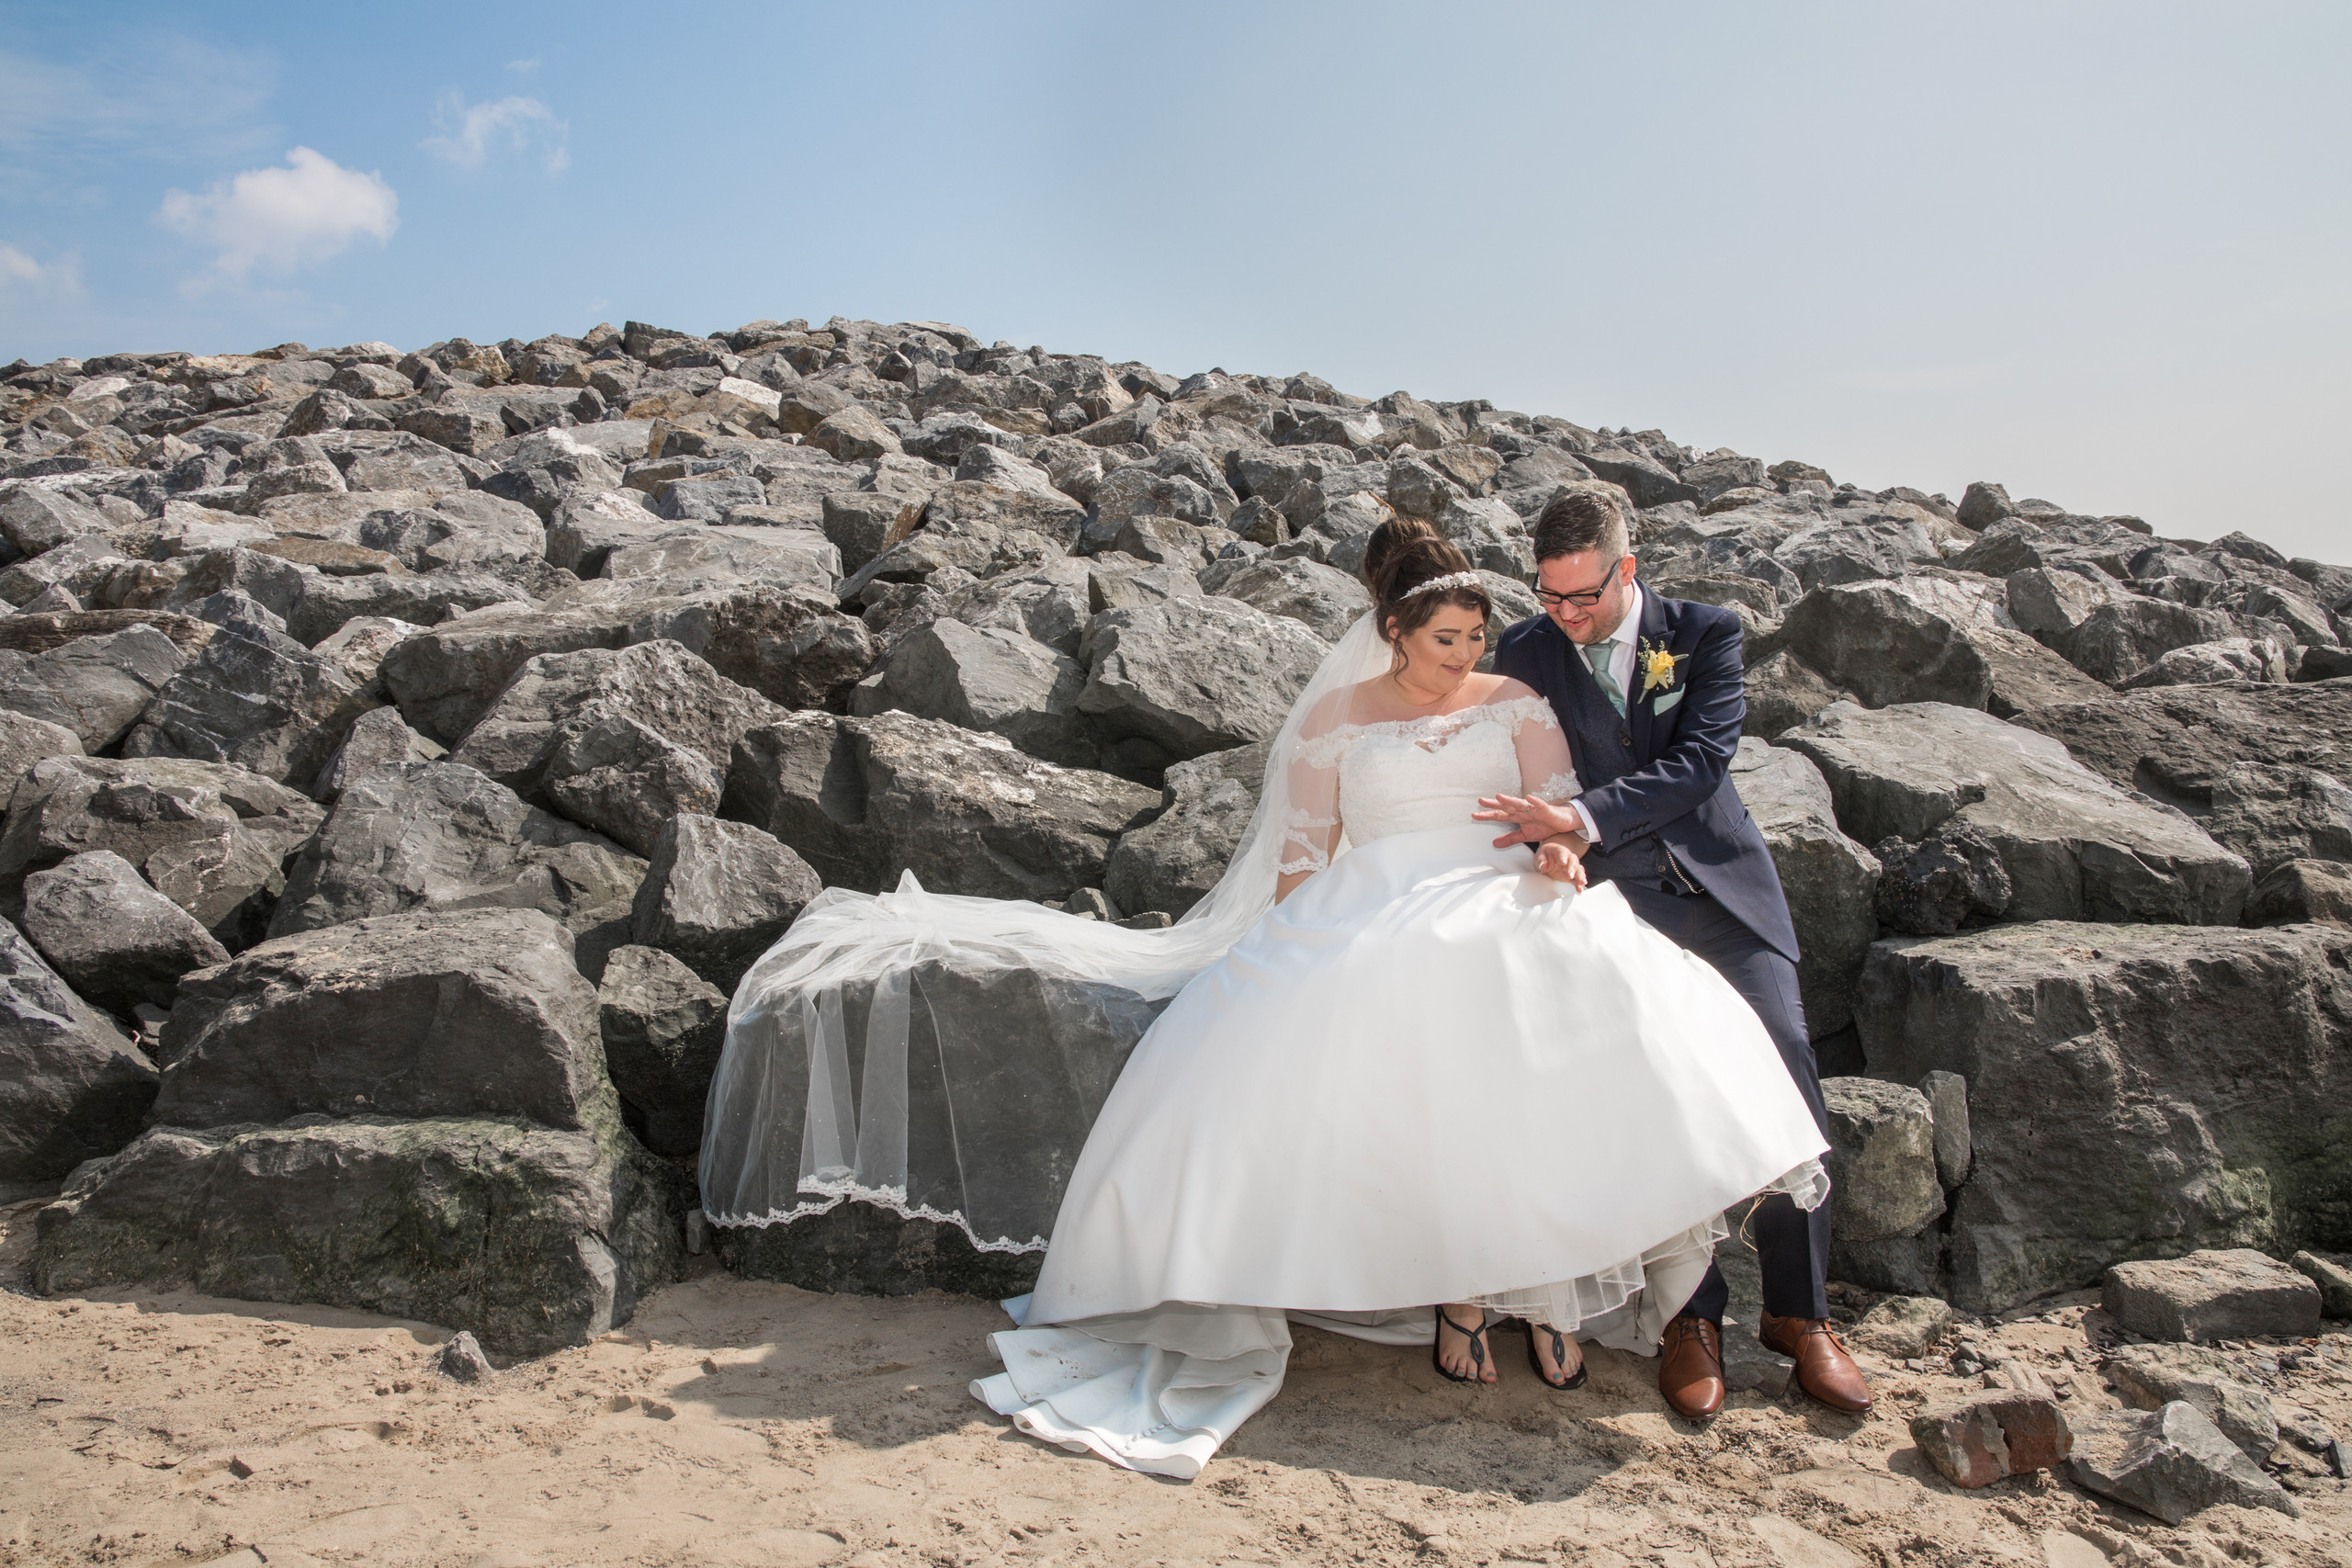 Wedding Photography on the Beach in The Gower, Swansea and Carmarthenshire